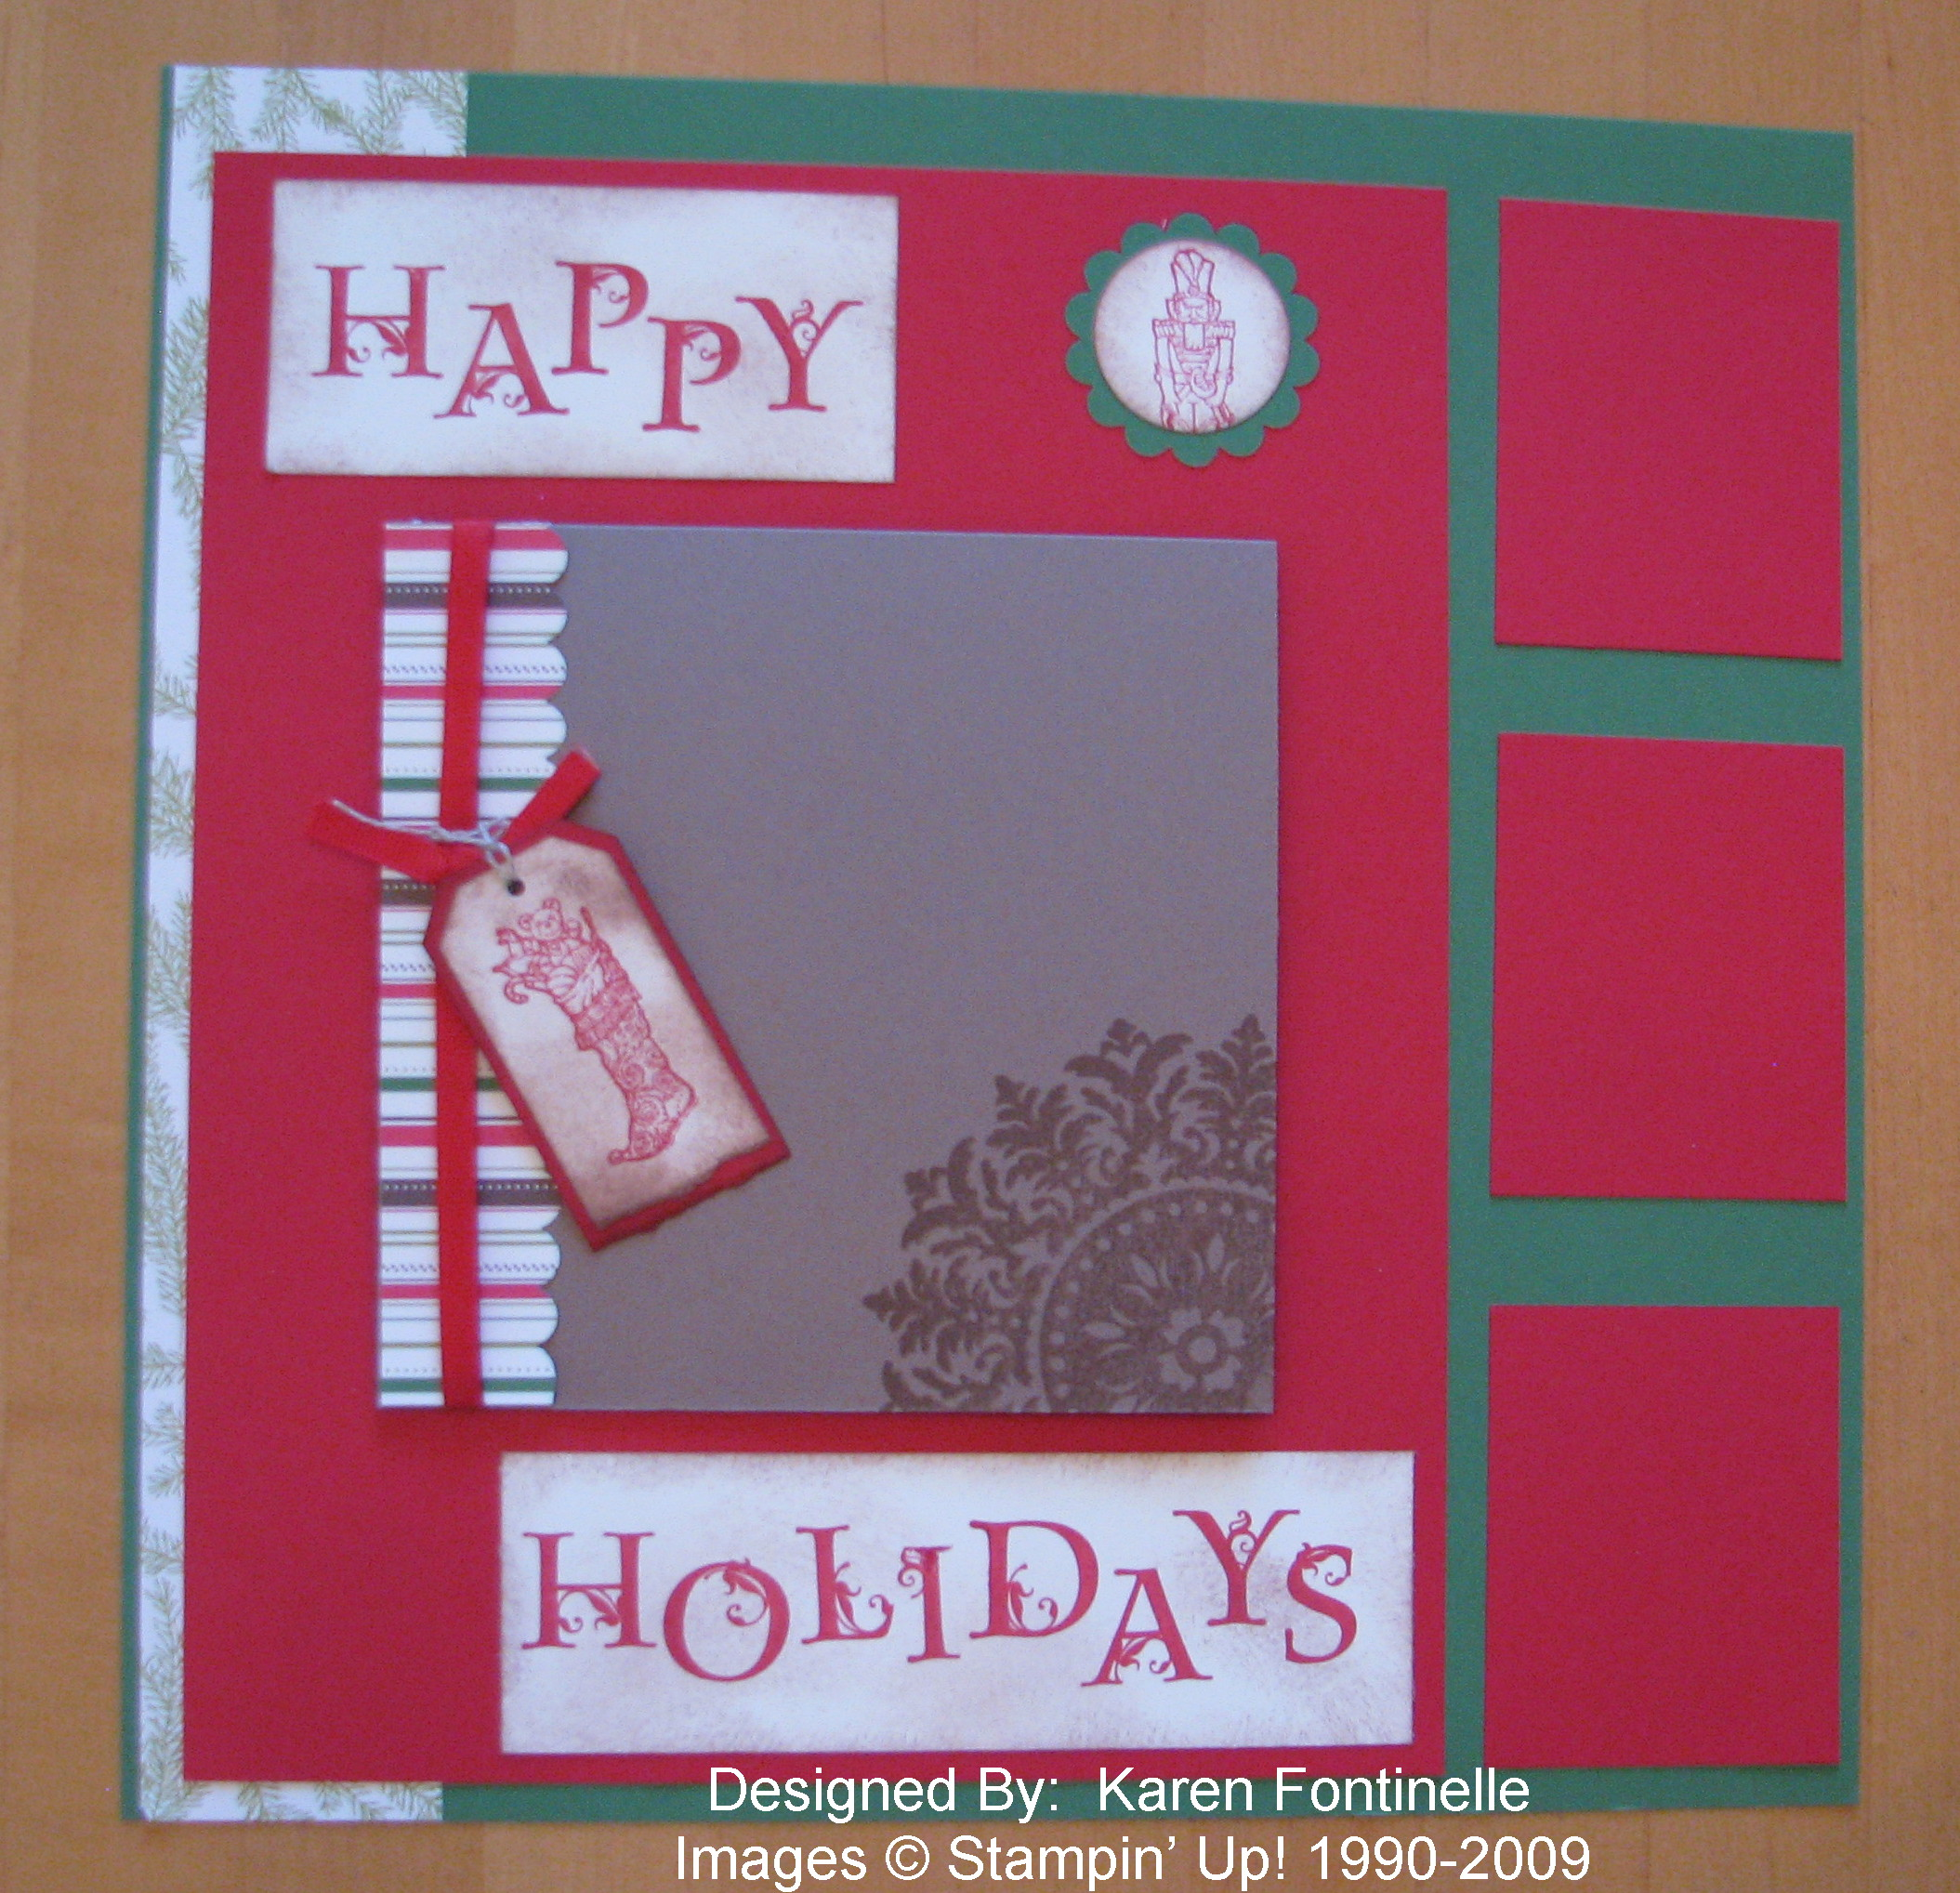 How to add scrapbook pages - It S Not Too Early To Start Designing Some Scrapbook Pages For Your Christmas Album Now And Then After The Holidays All You Have To Do Is Add The Photos